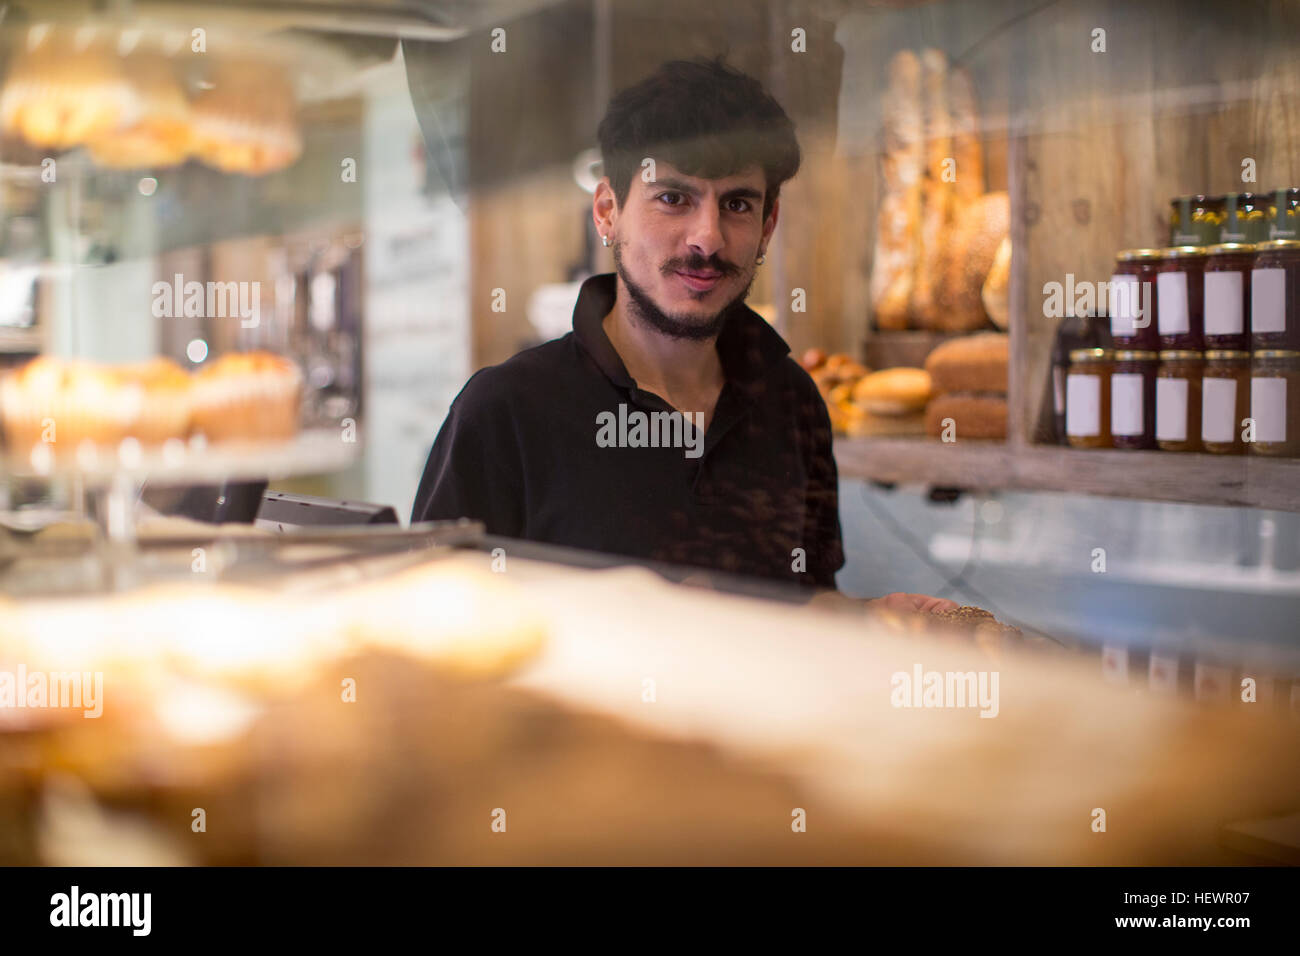 Portrait of young male barista behind cafe counter - Stock Image